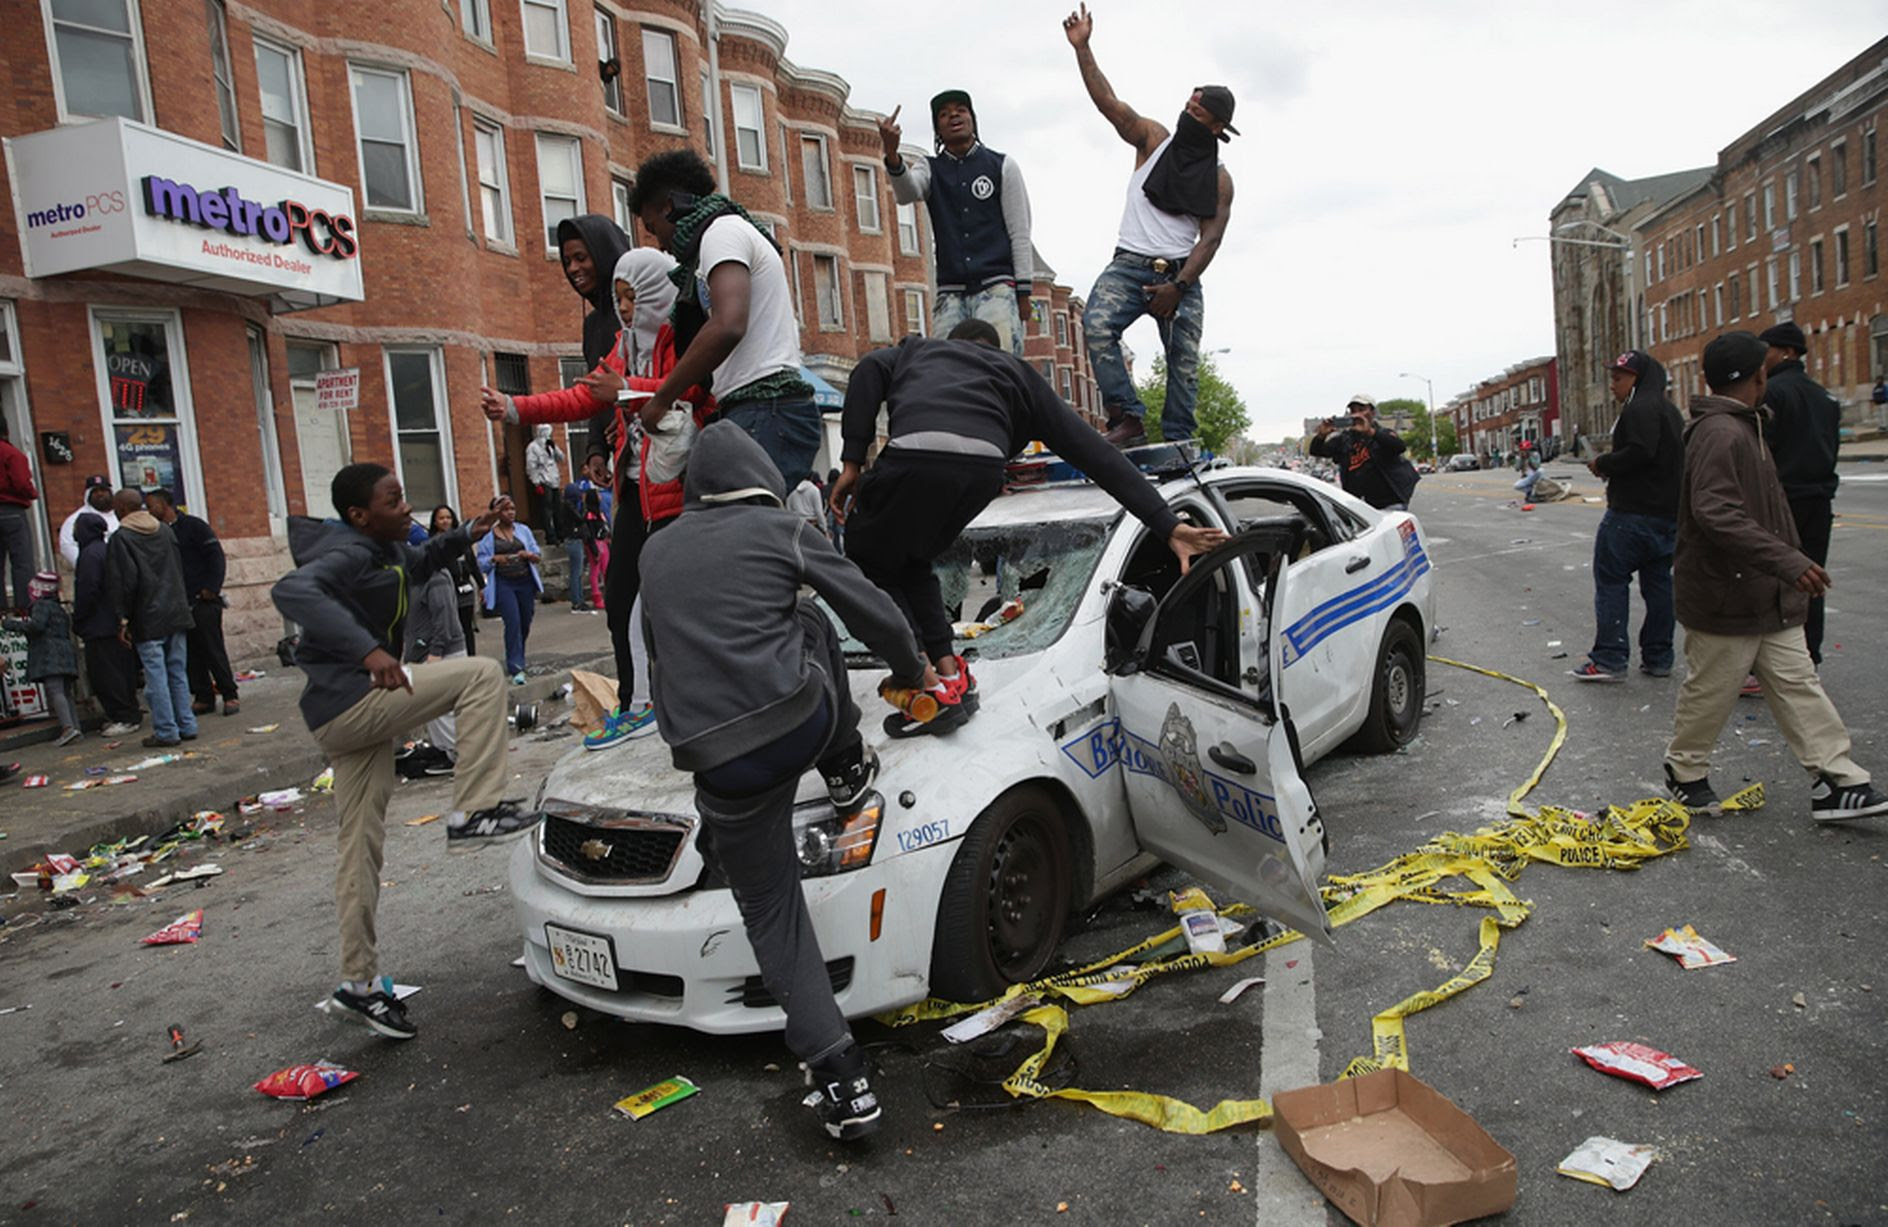 Demonstrators climb on a destroyed Baltimore Police car